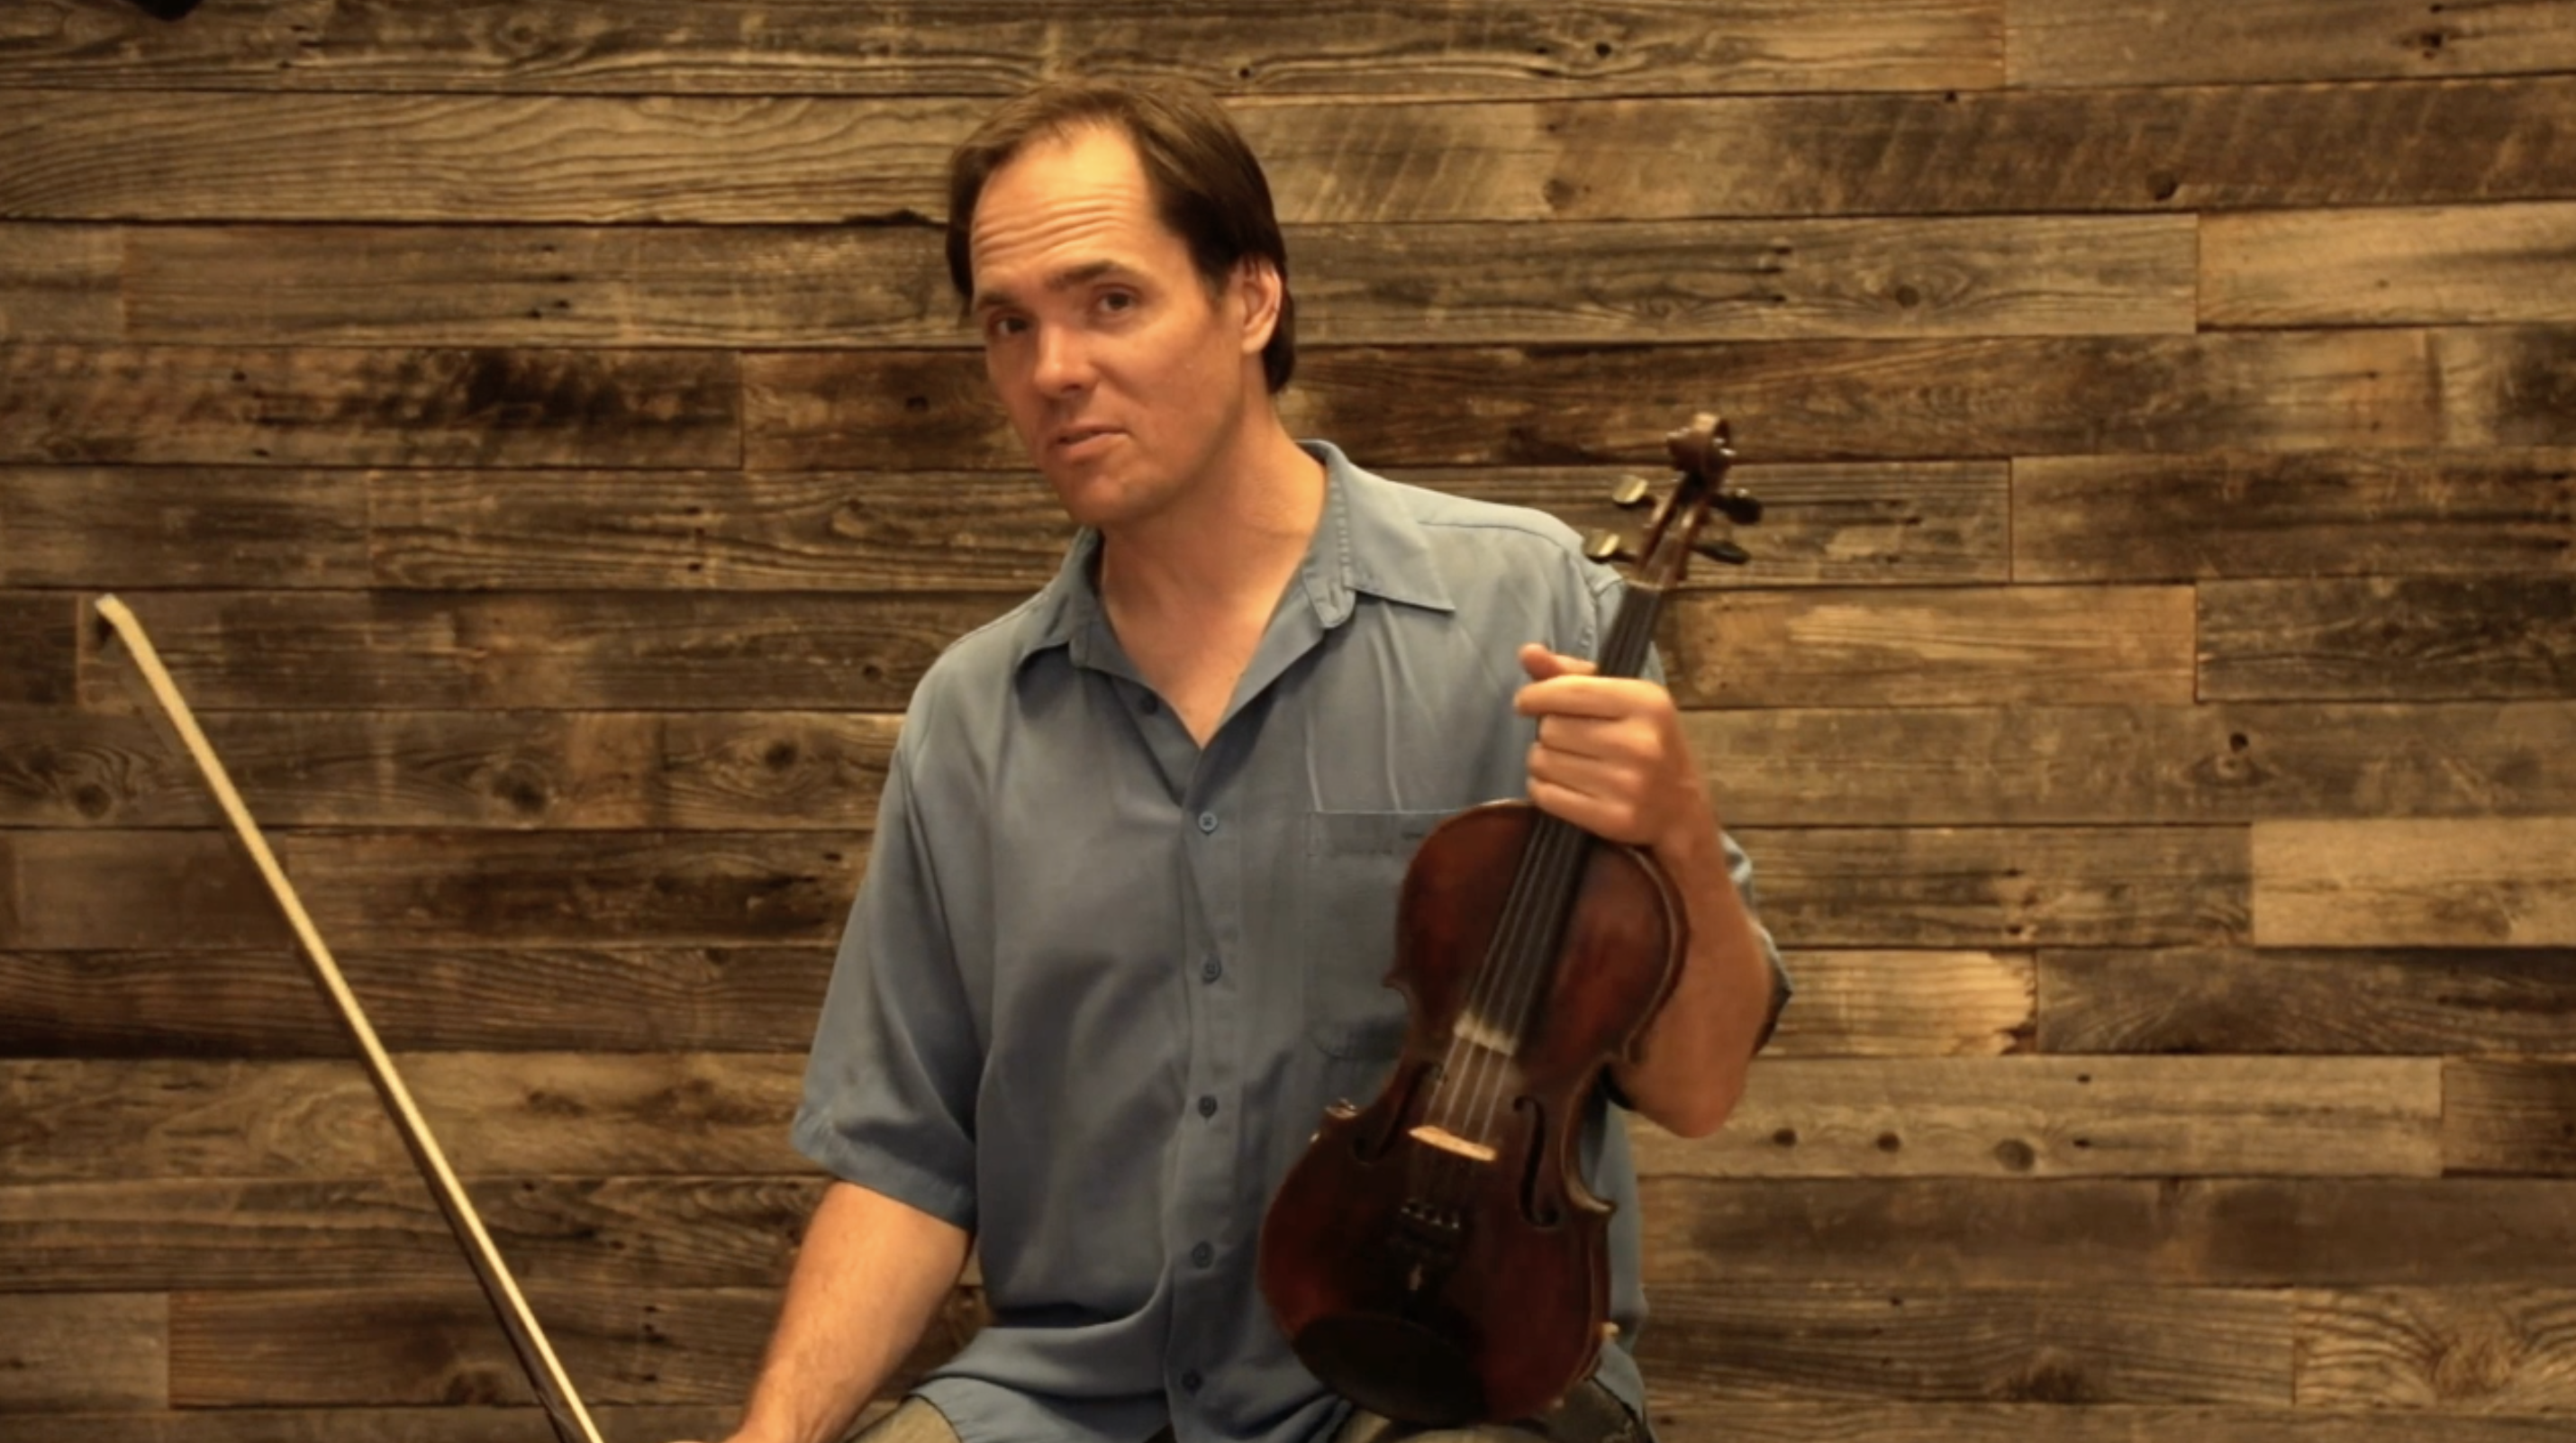 Demonstration of Shifting in 3rd Position - D String